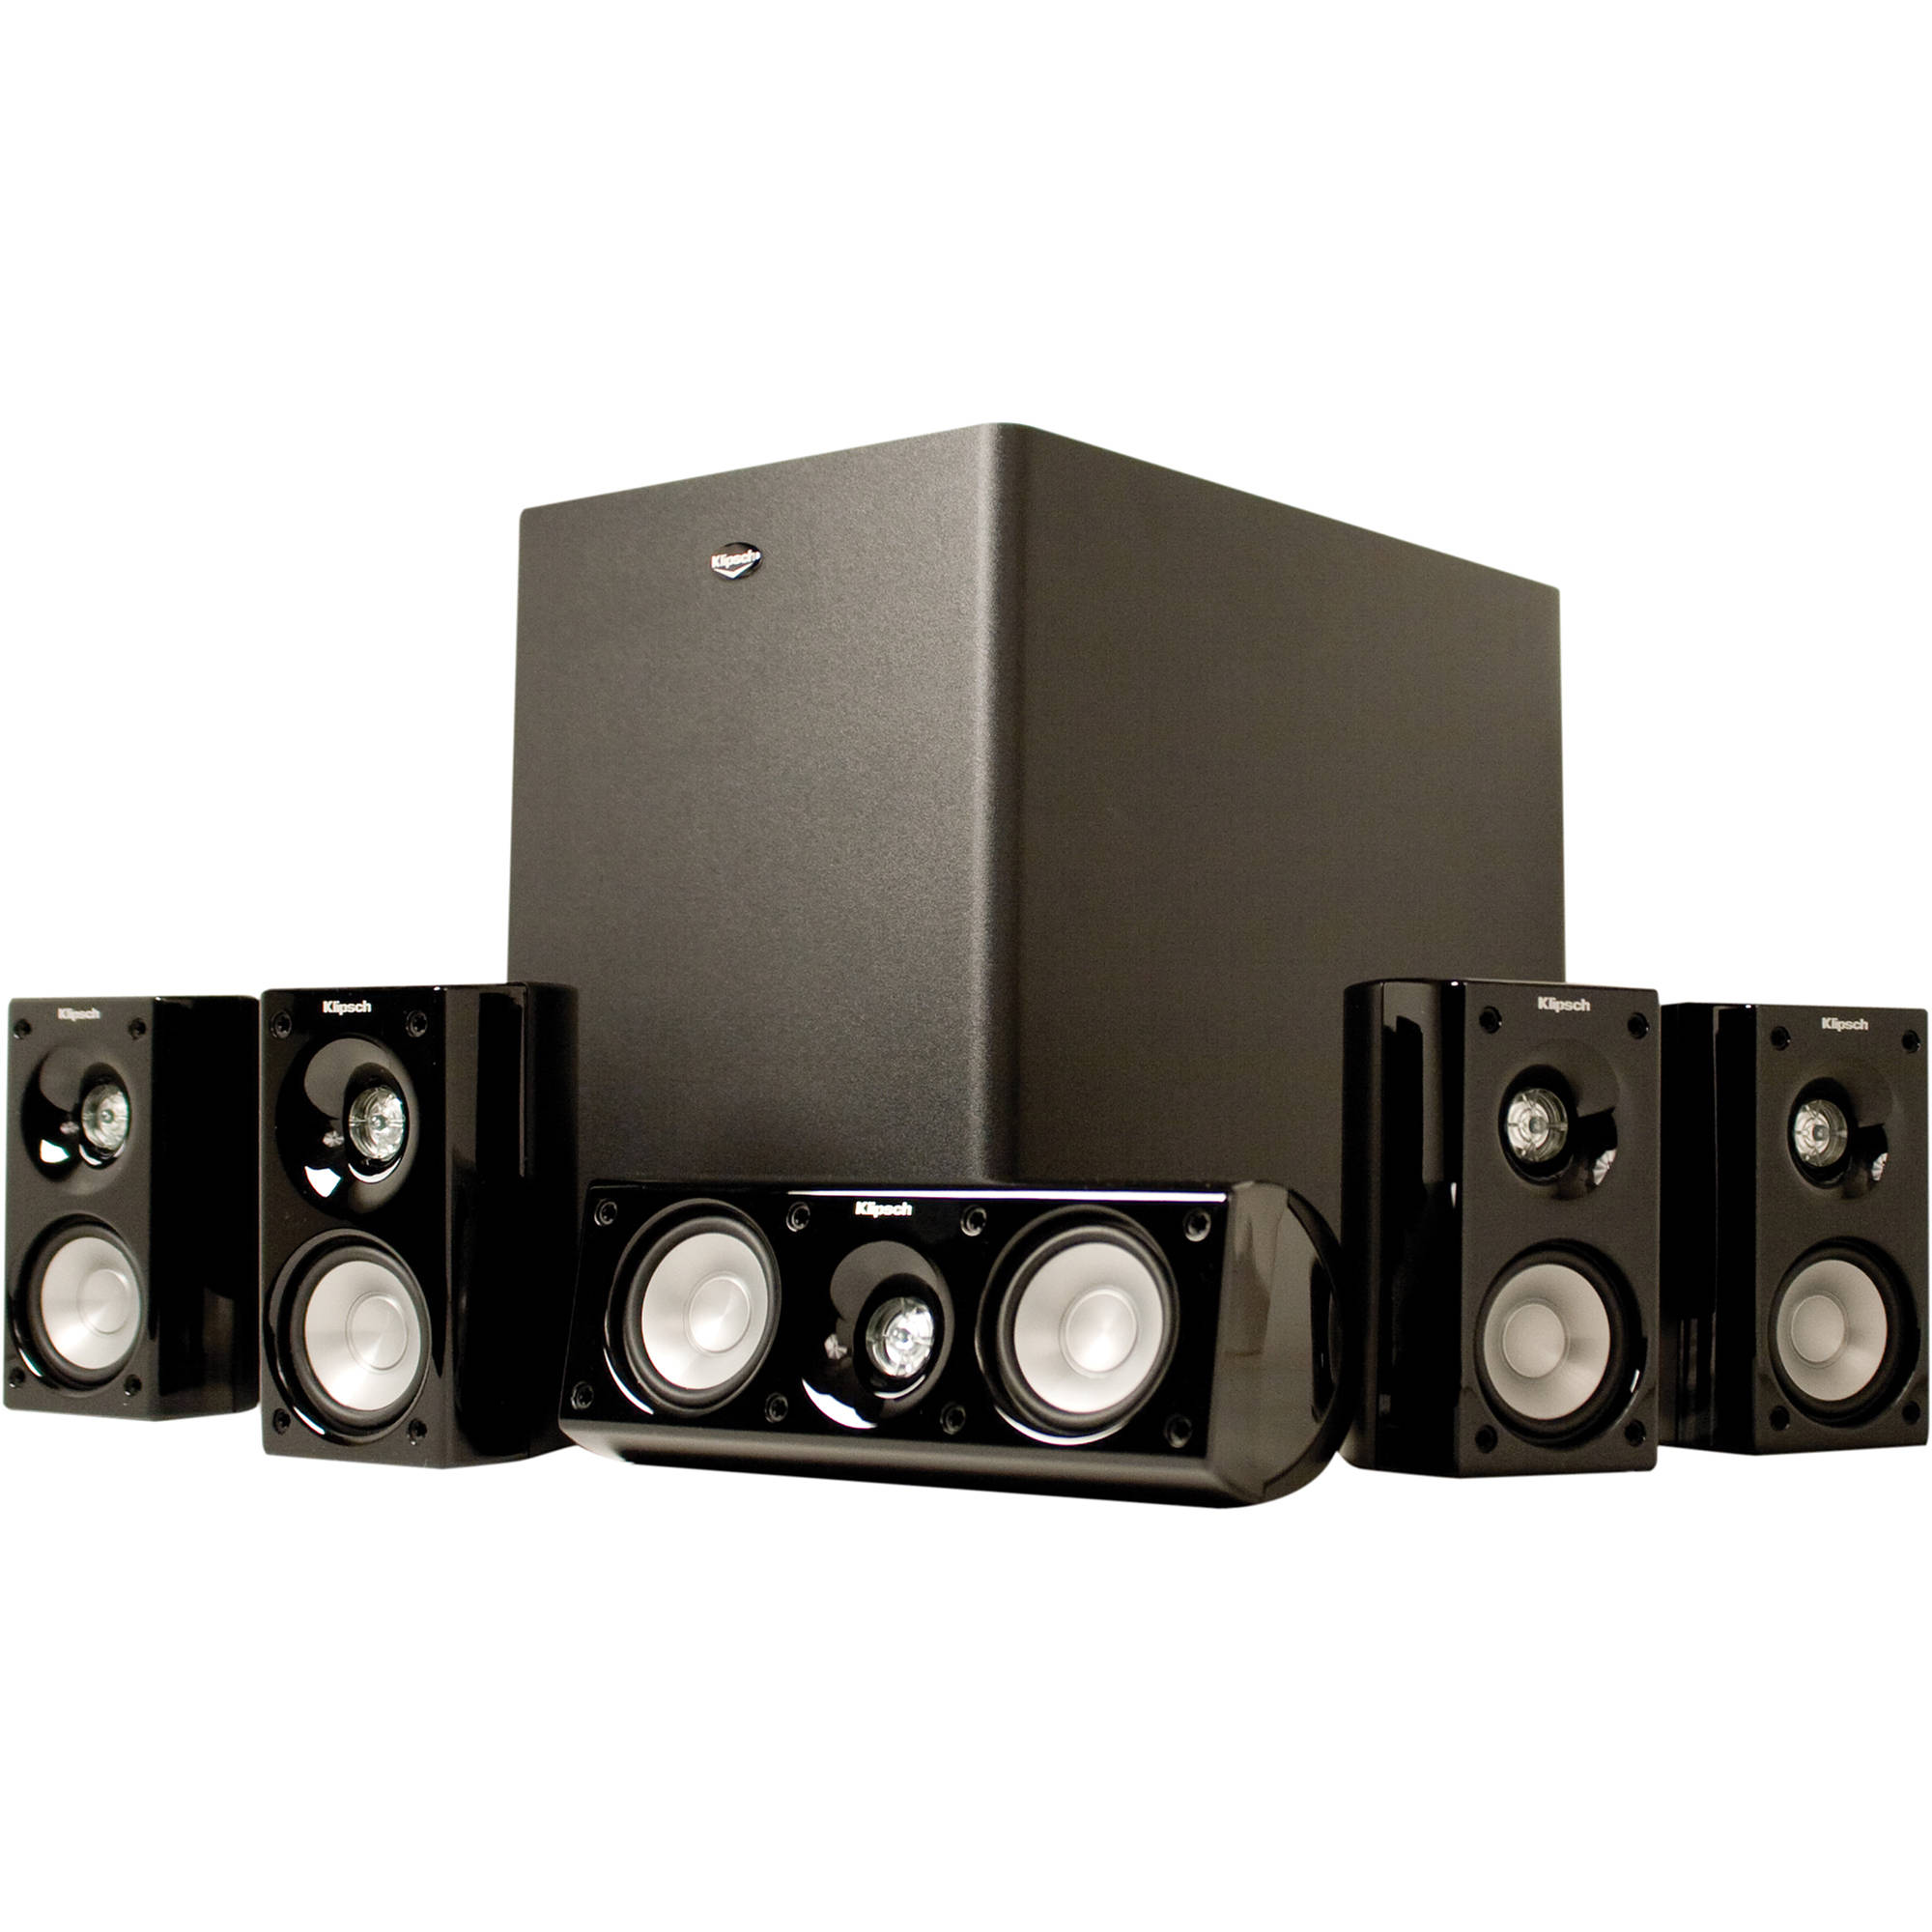 Klipsch HD Theater 500 Home Theater System HD THEATER 500 B&H